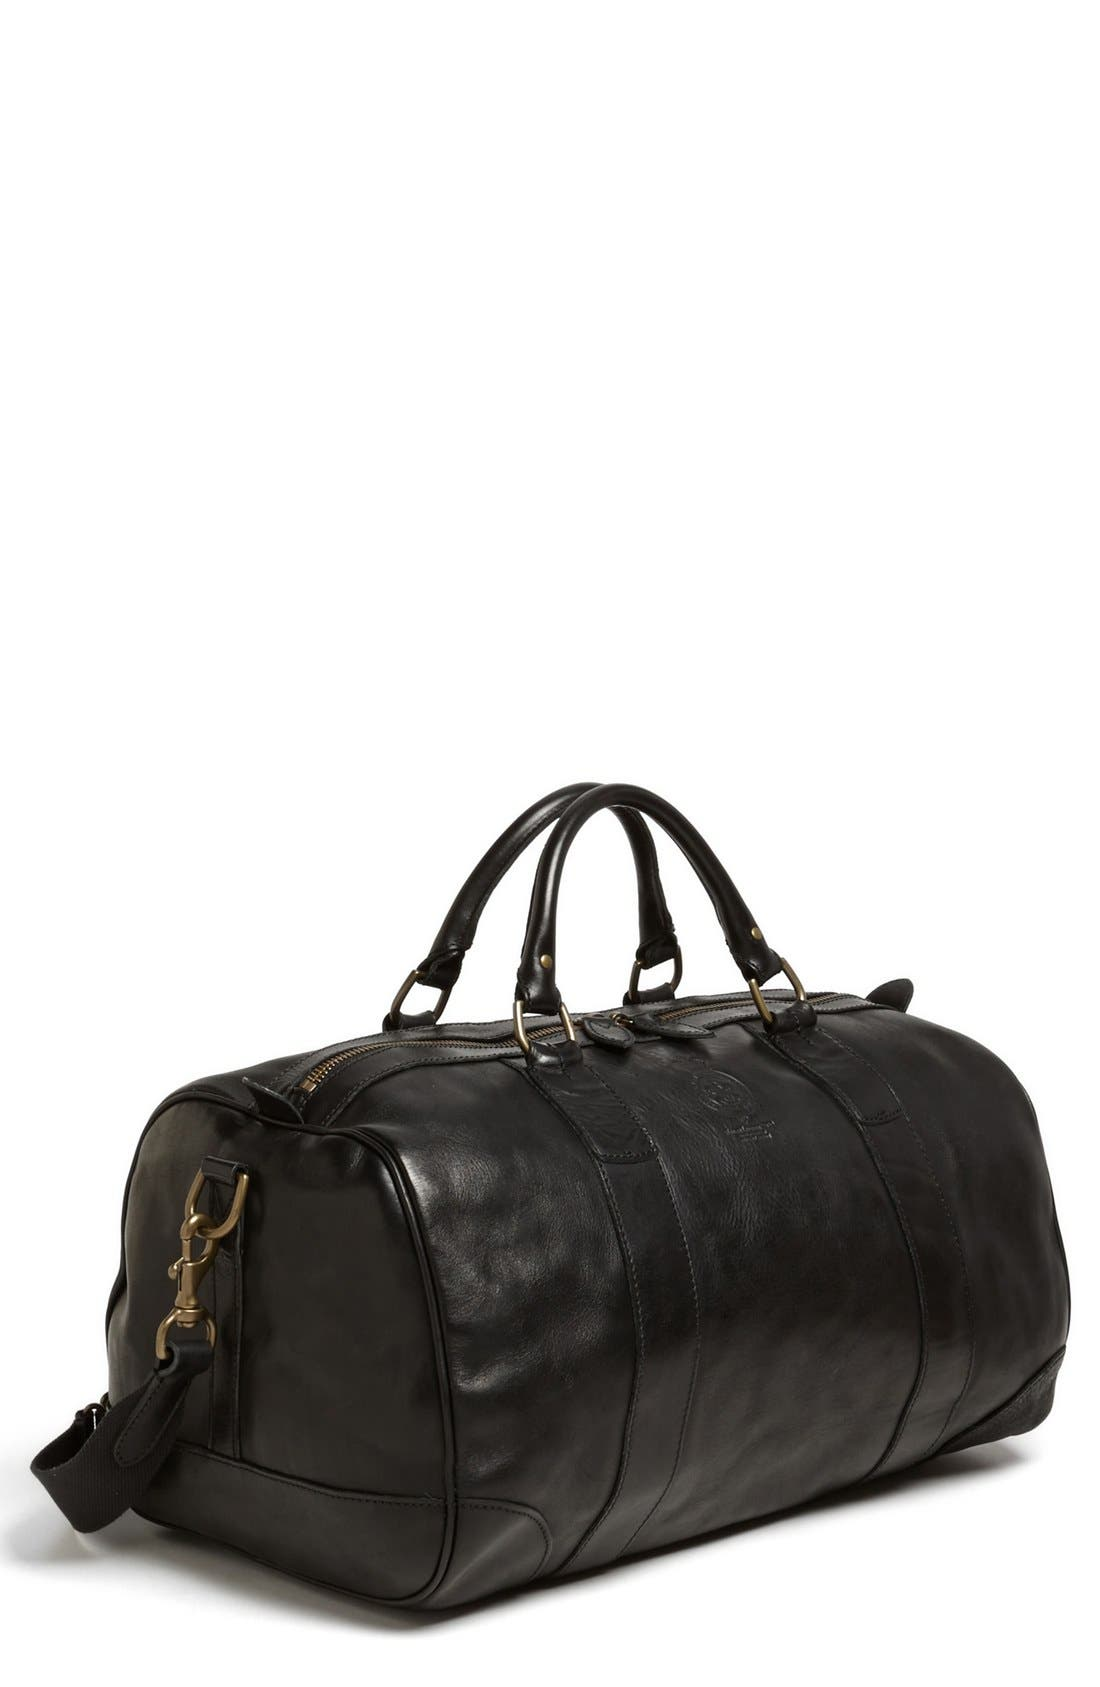 Alternate Image 1 Selected - Polo Ralph Lauren Leather Gym Bag